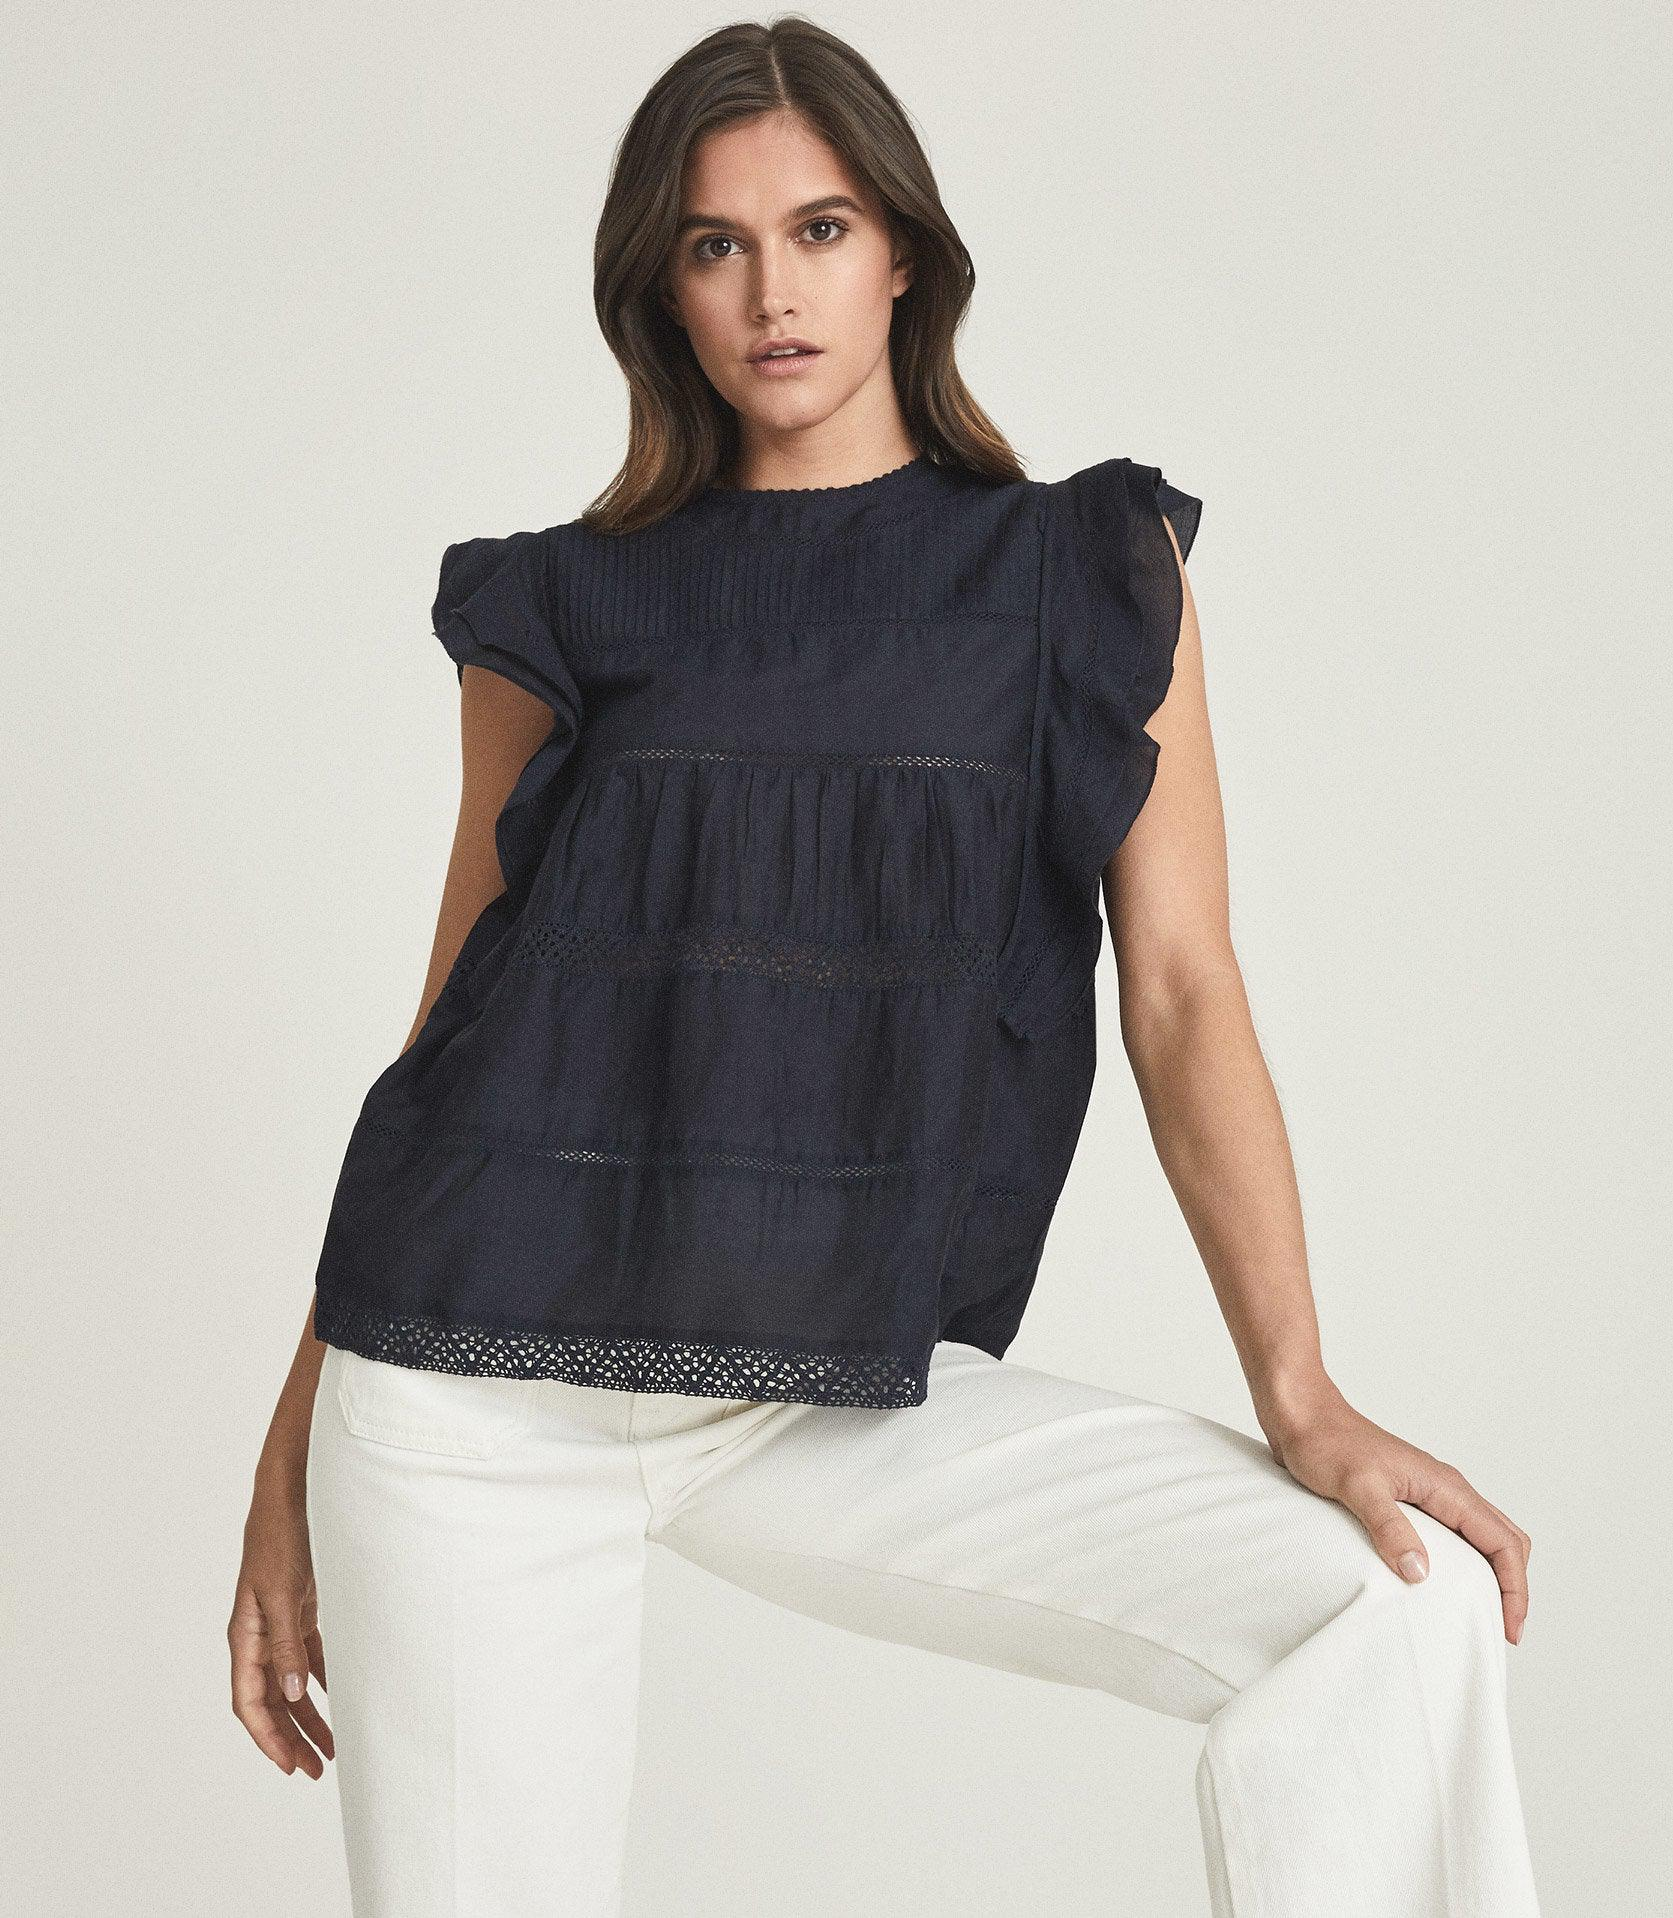 SIMONE - LACE DETAILED CAP SLEEVE TOP 4